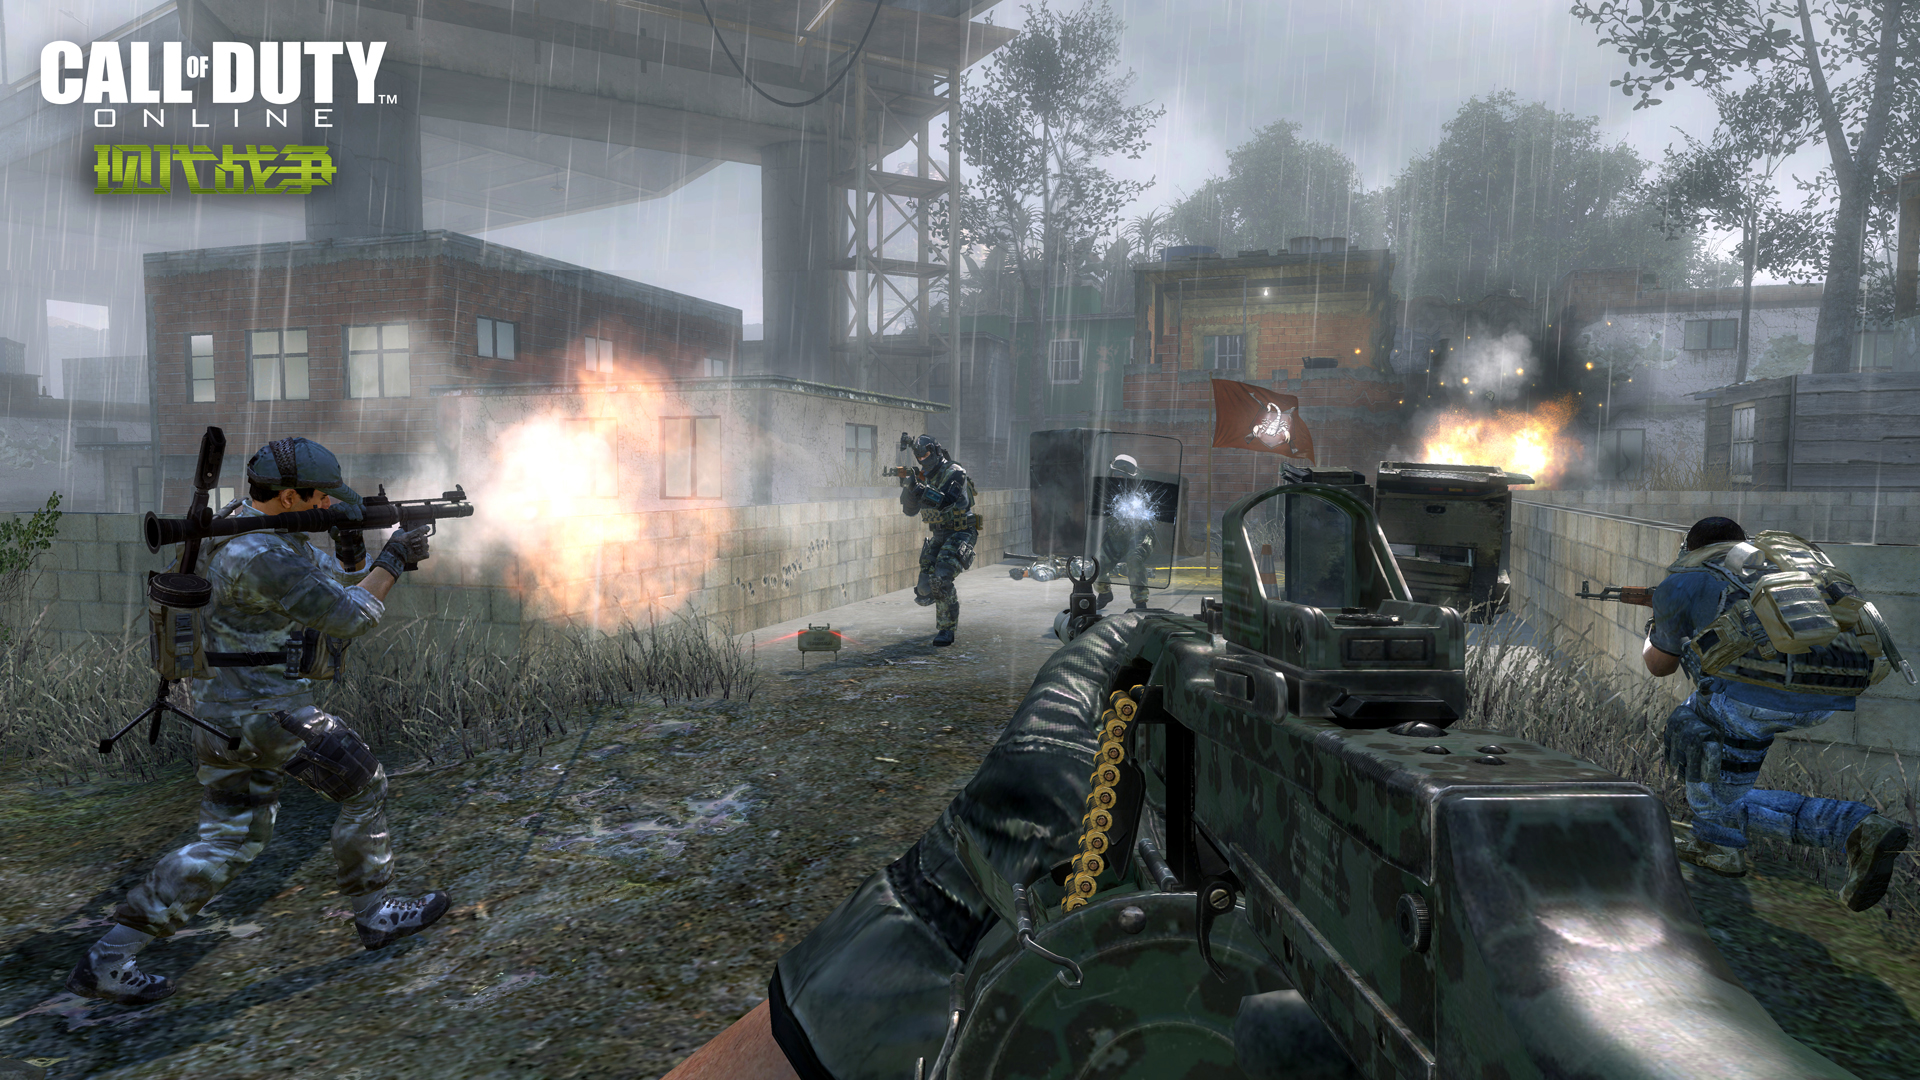 call-of-duty-online-screenshot-005